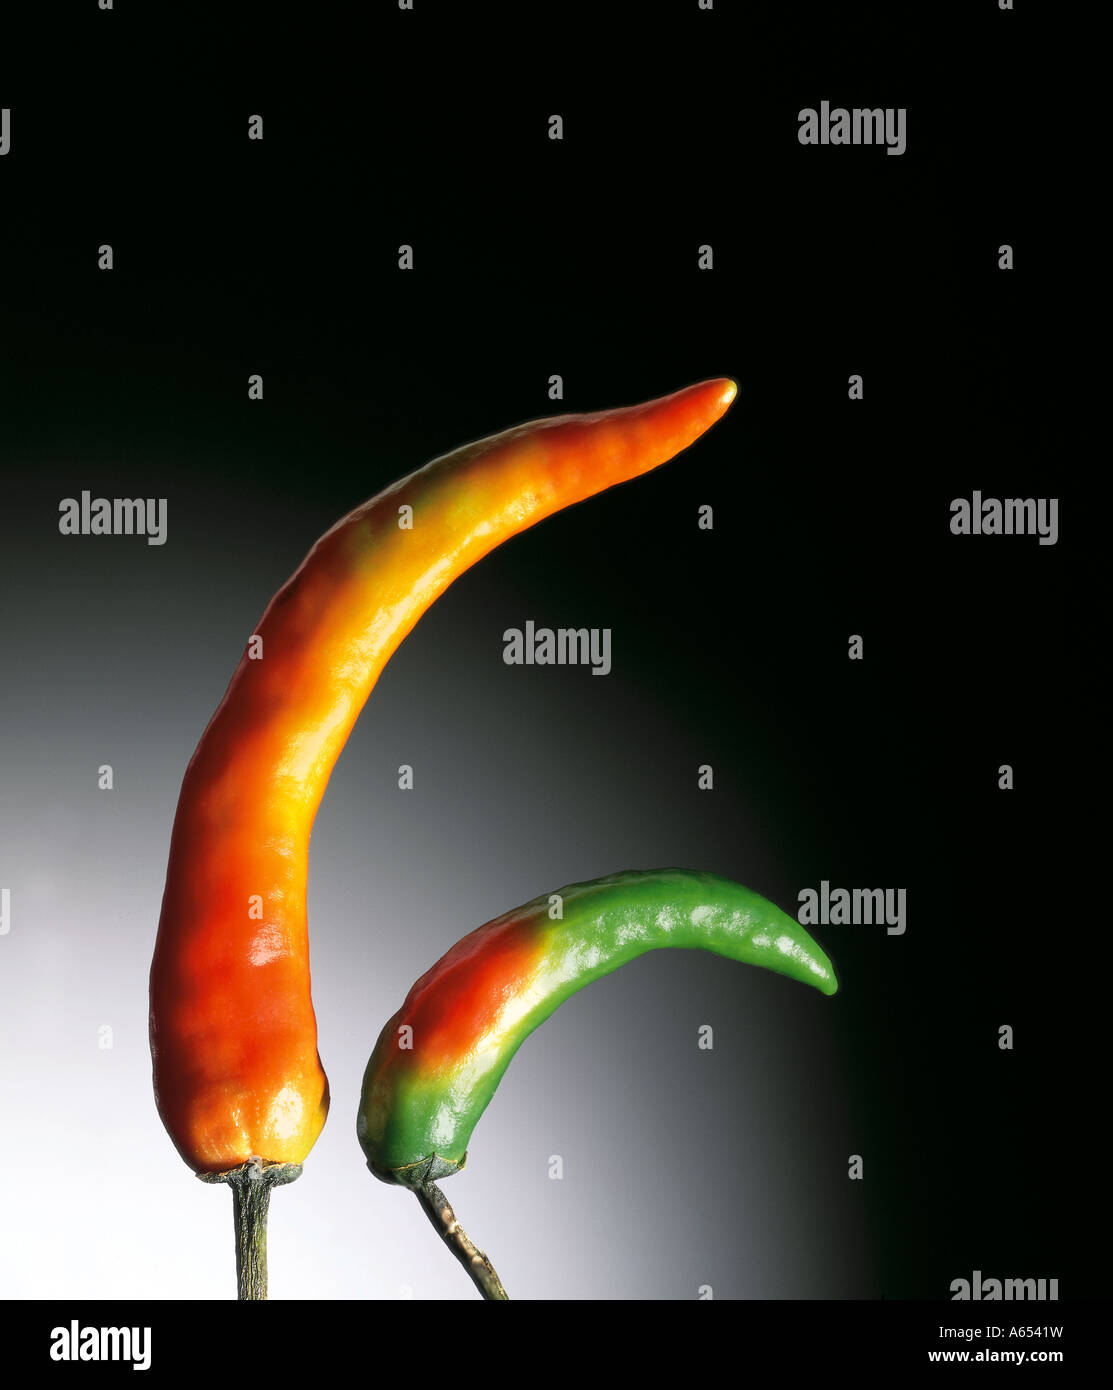 Chilli peppers close up against dark background - Stock Image